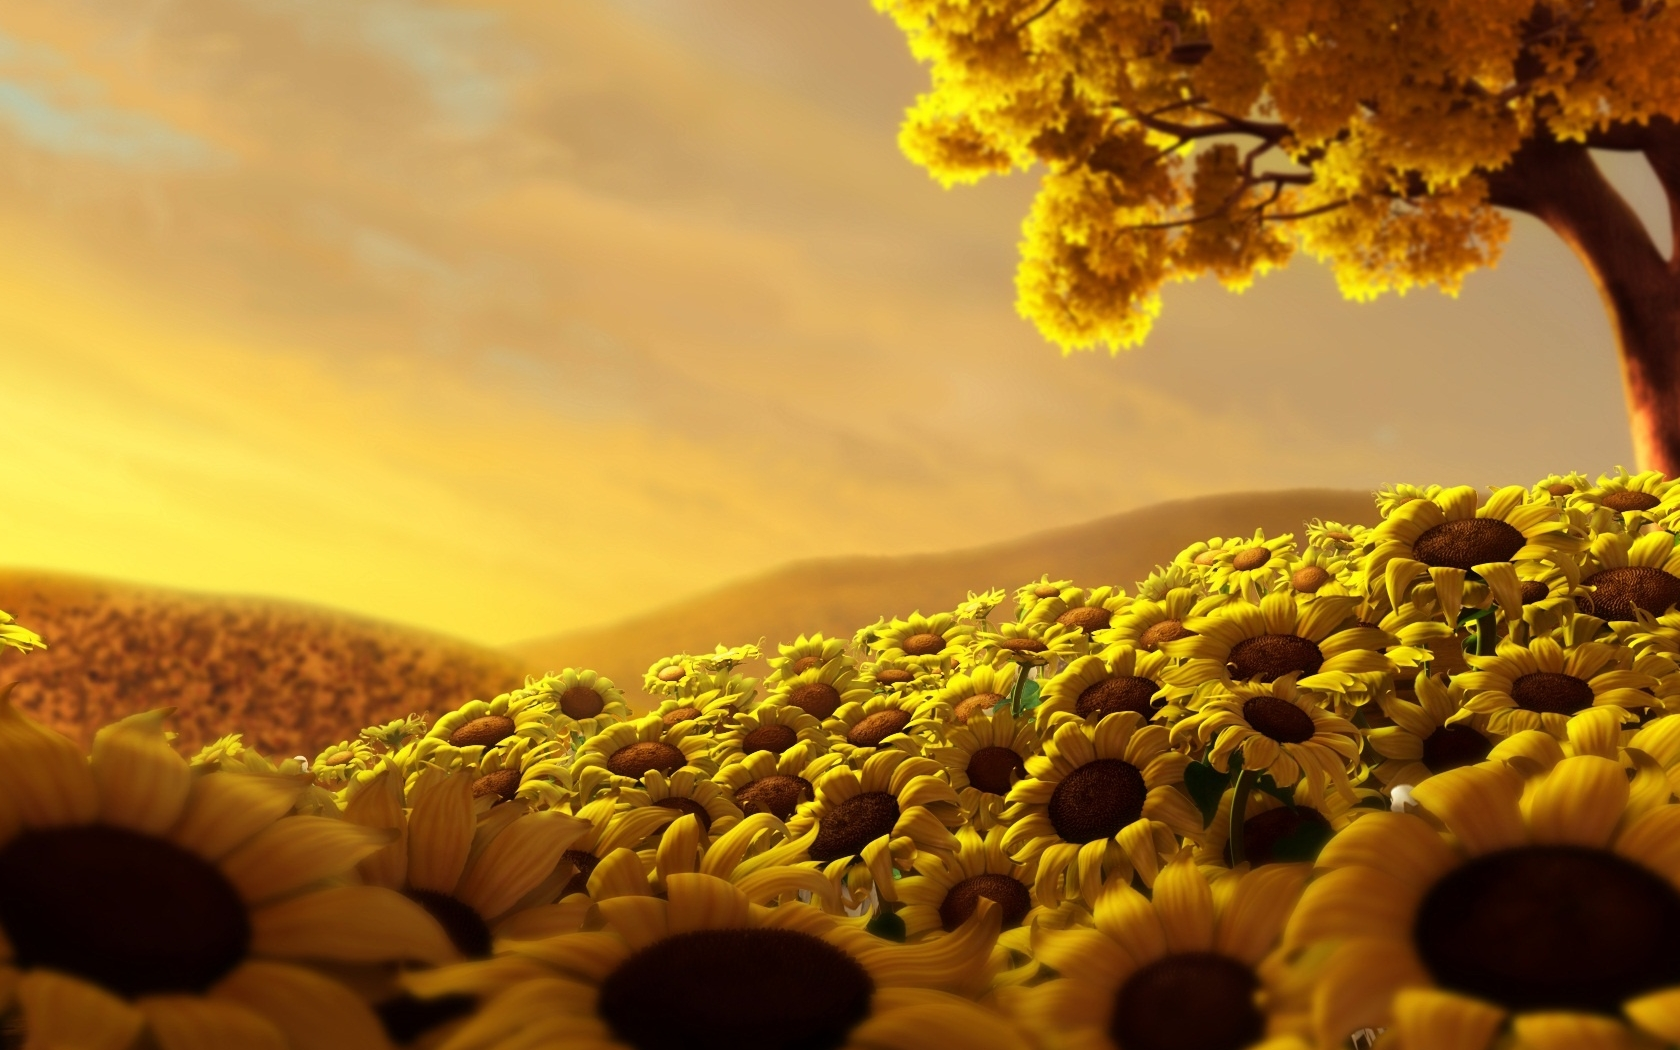 City of sunflowers